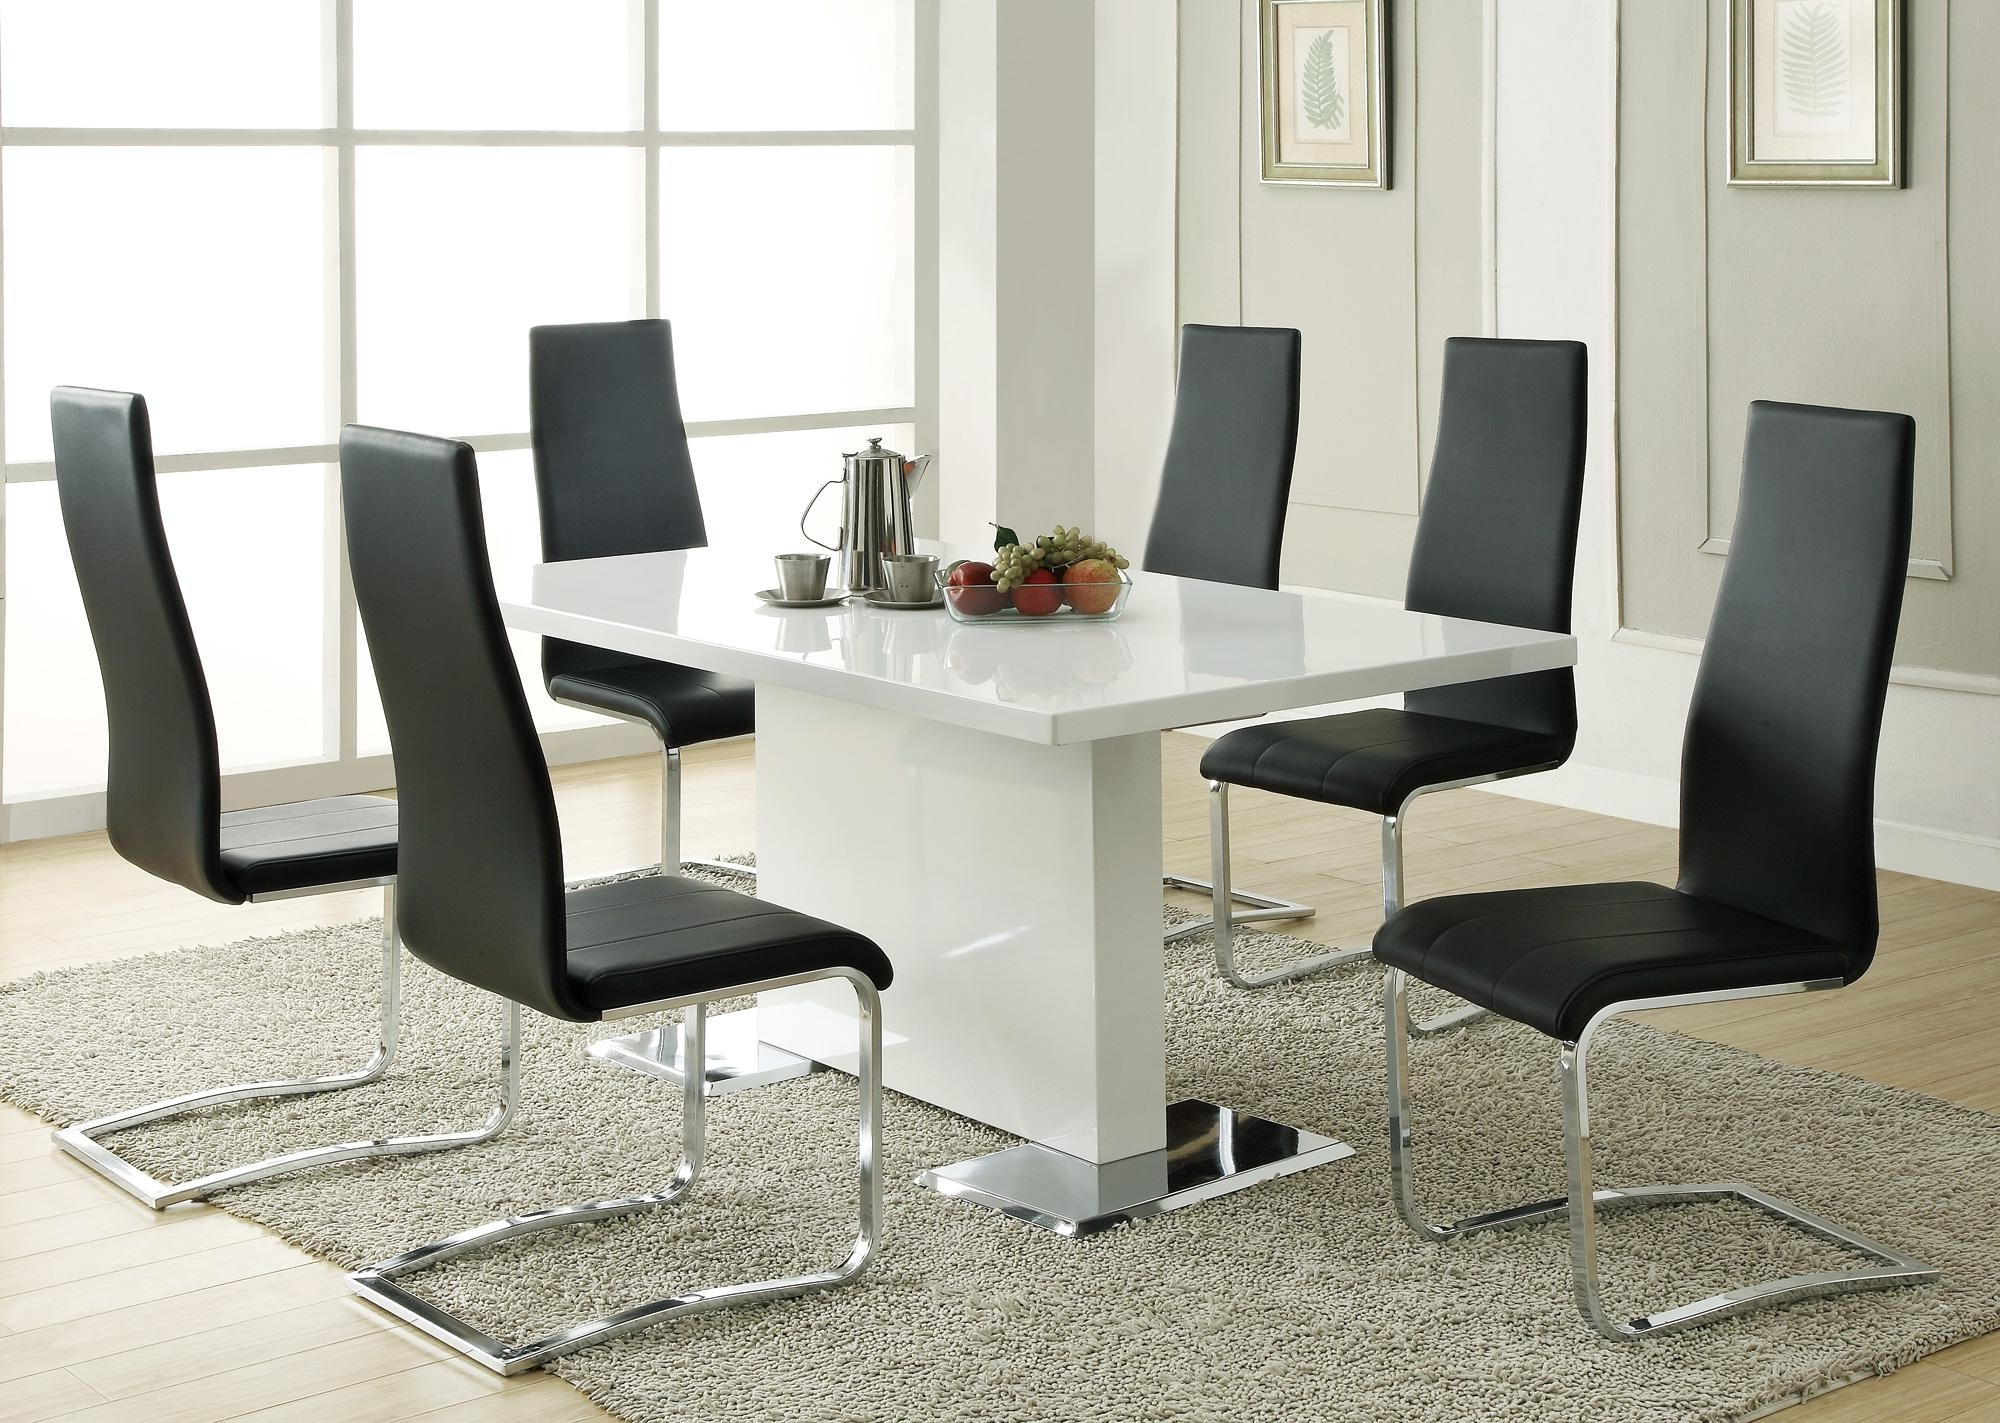 Fashionable Dining Sets (View 8 of 25)